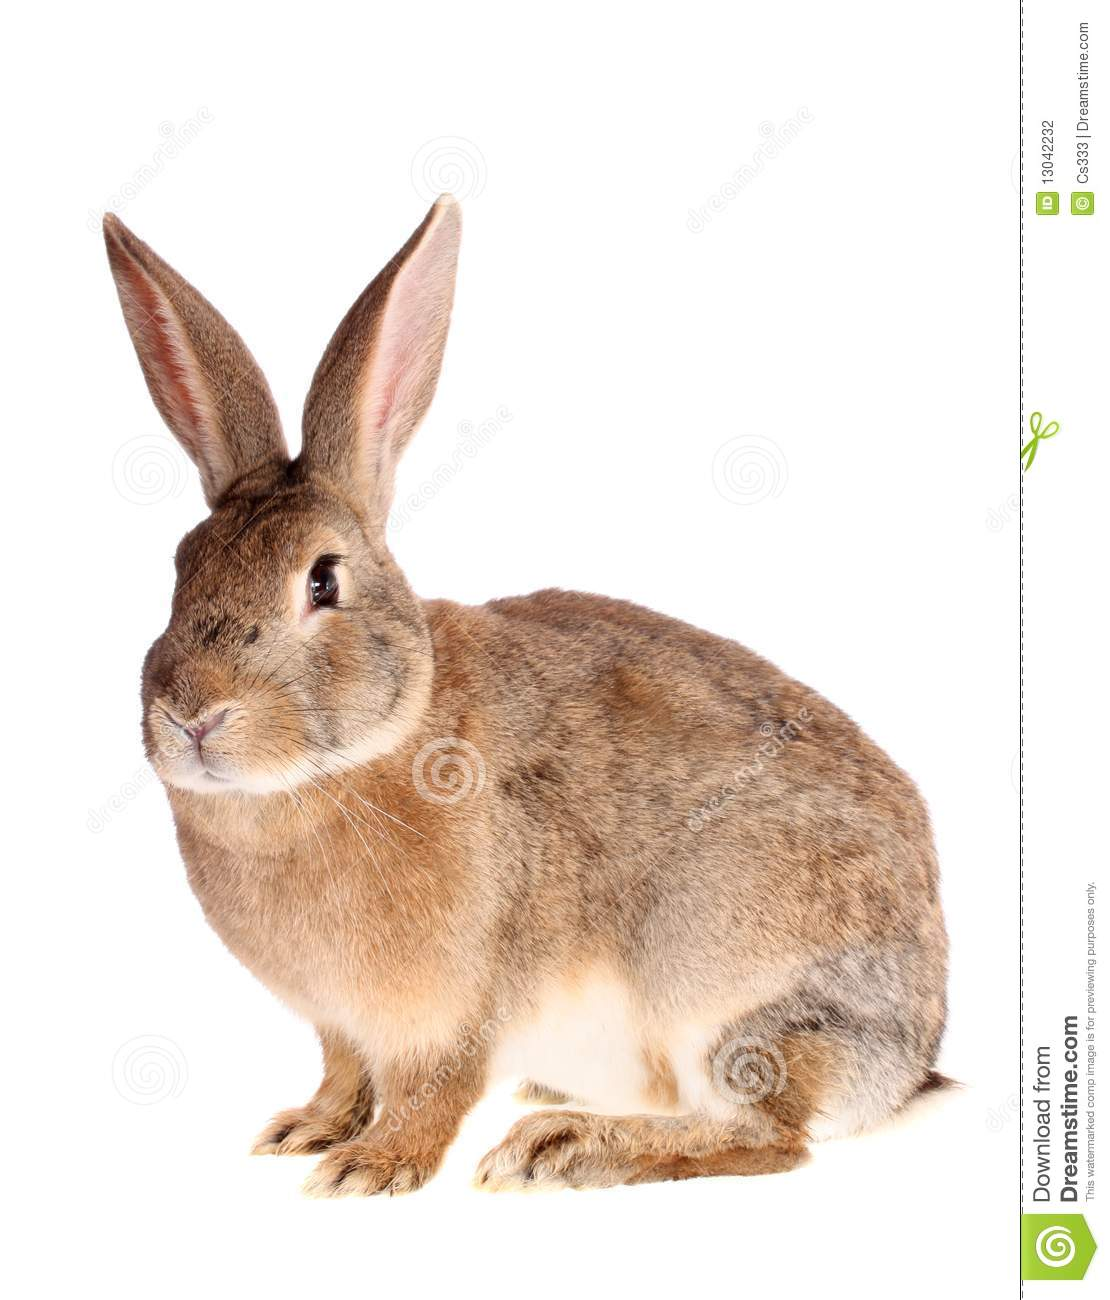 Brown Rabbit, Isolated. Stock Photography - Image: 13042232